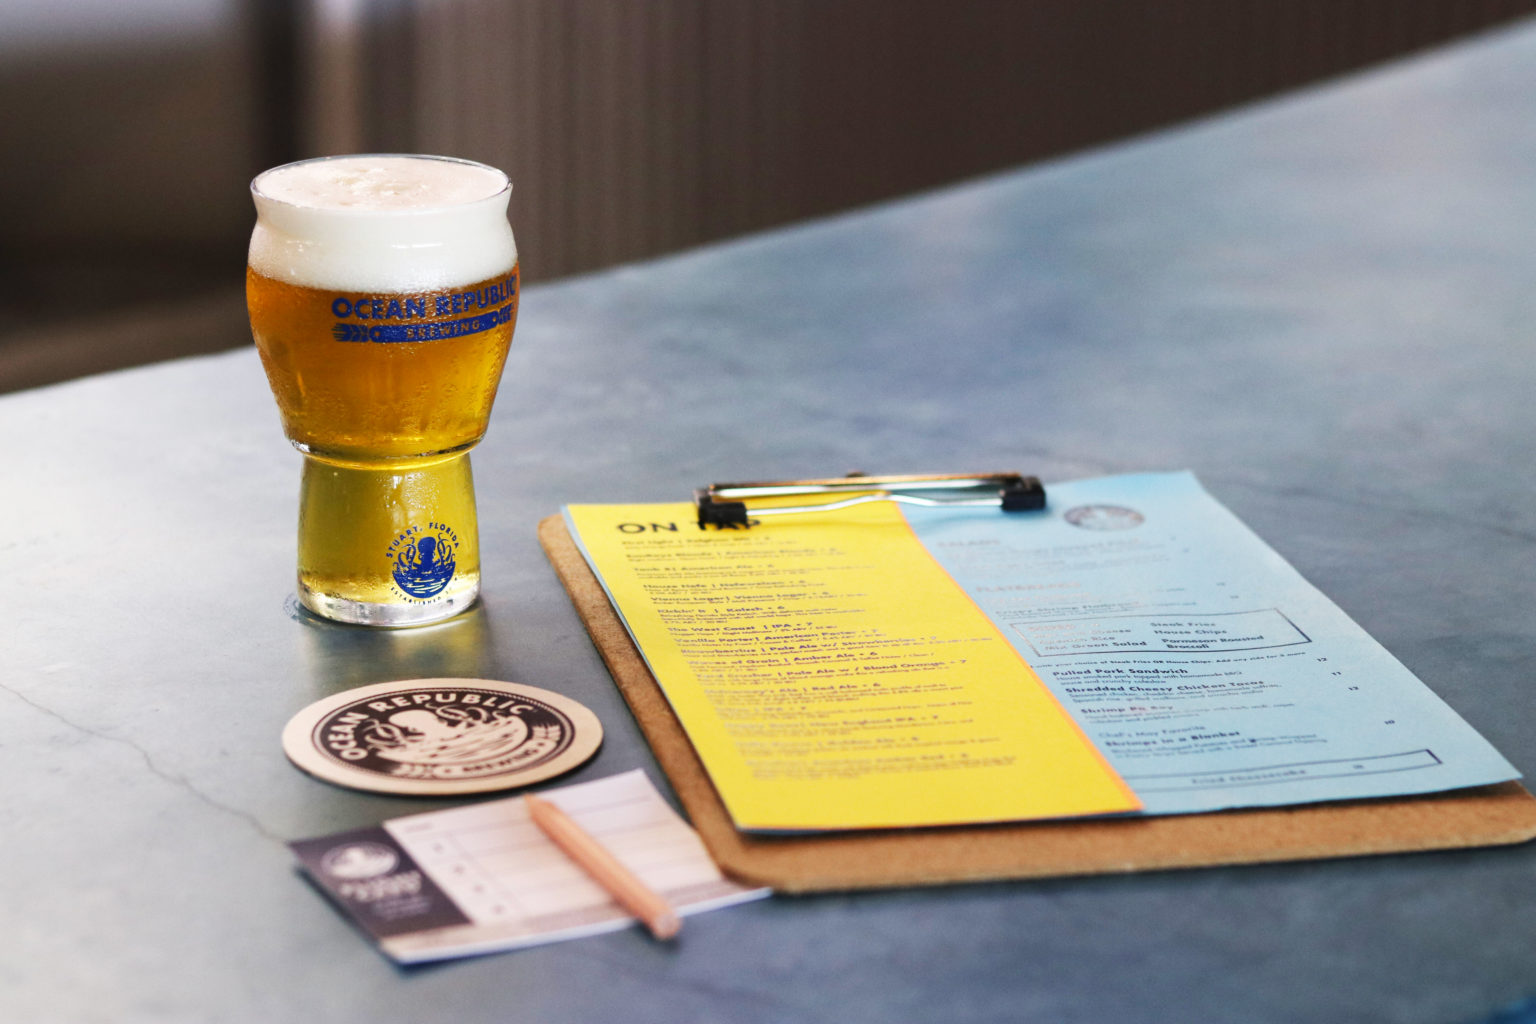 Ocean Republic Brewing Collateral on Bar with Beer